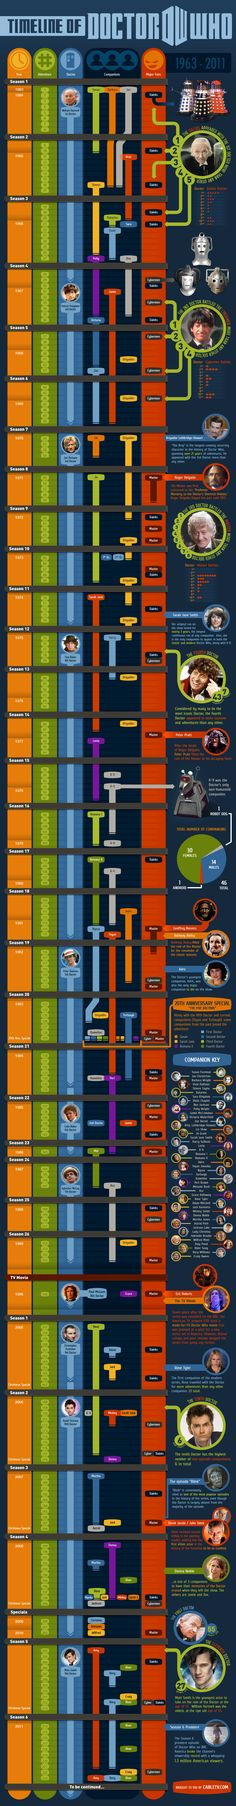 Best Dr Who timeline ever